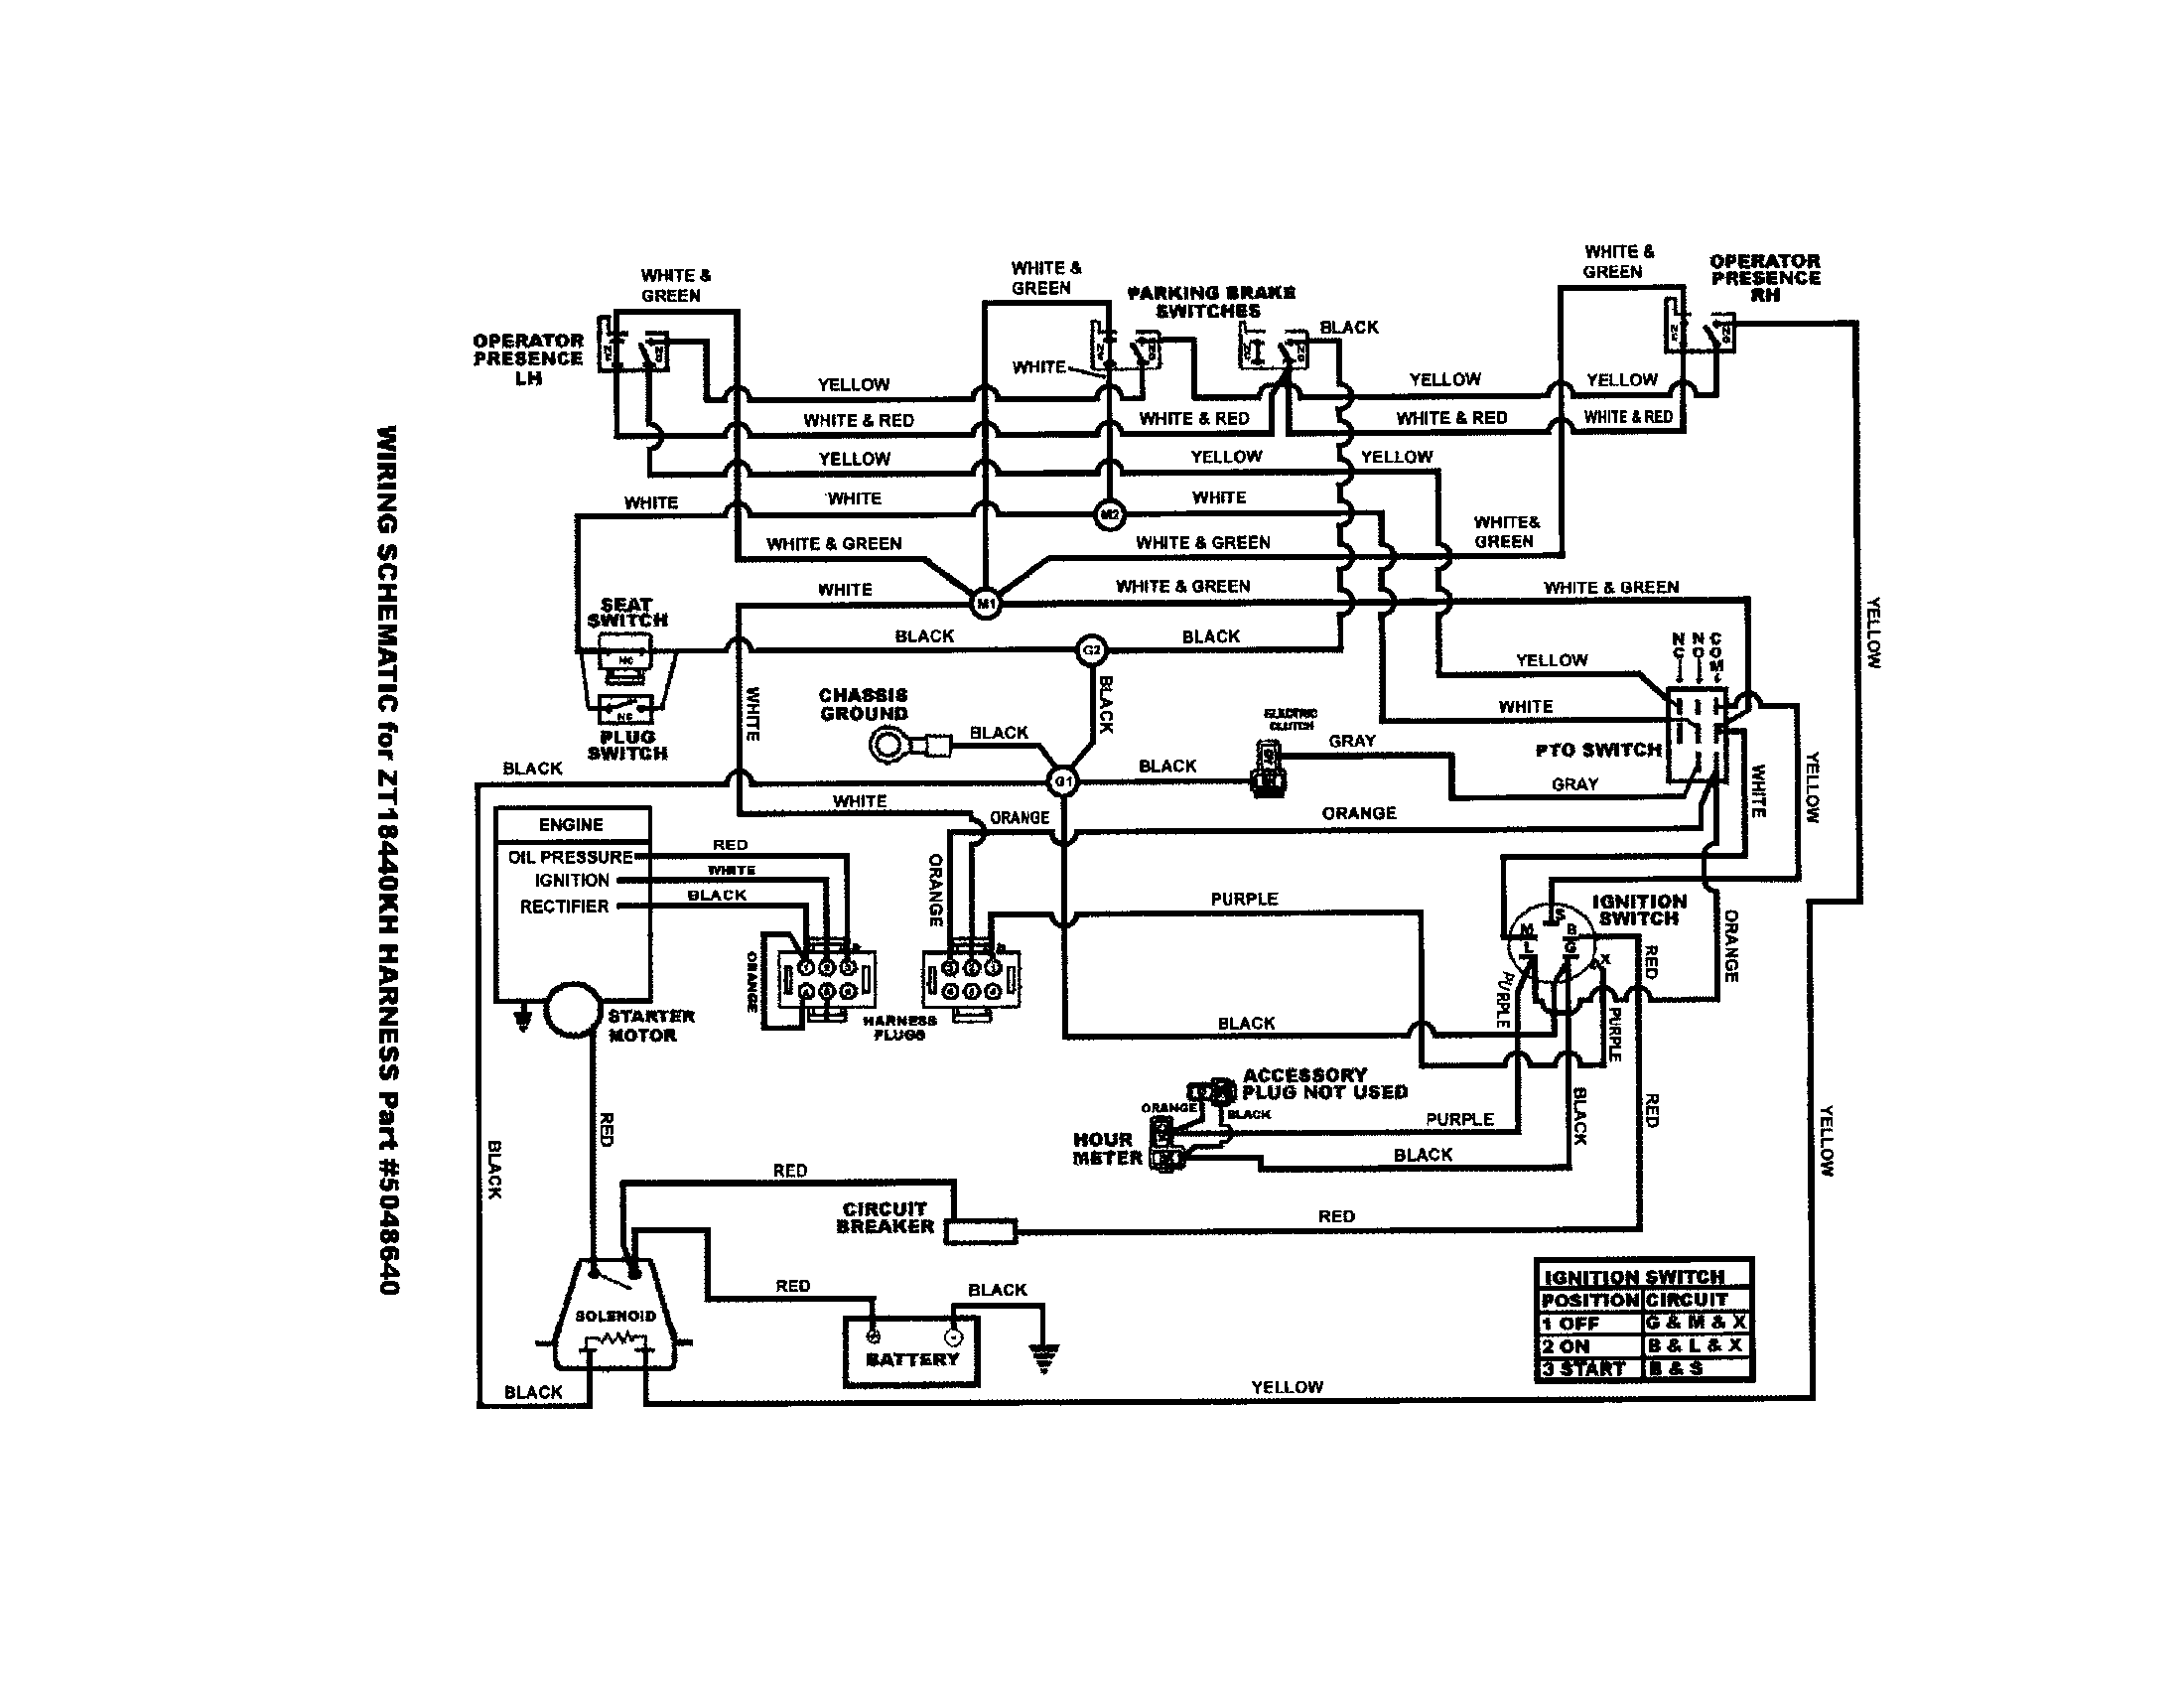 Simplicity Conquest Wiring Diagram. . Wiring Diagram